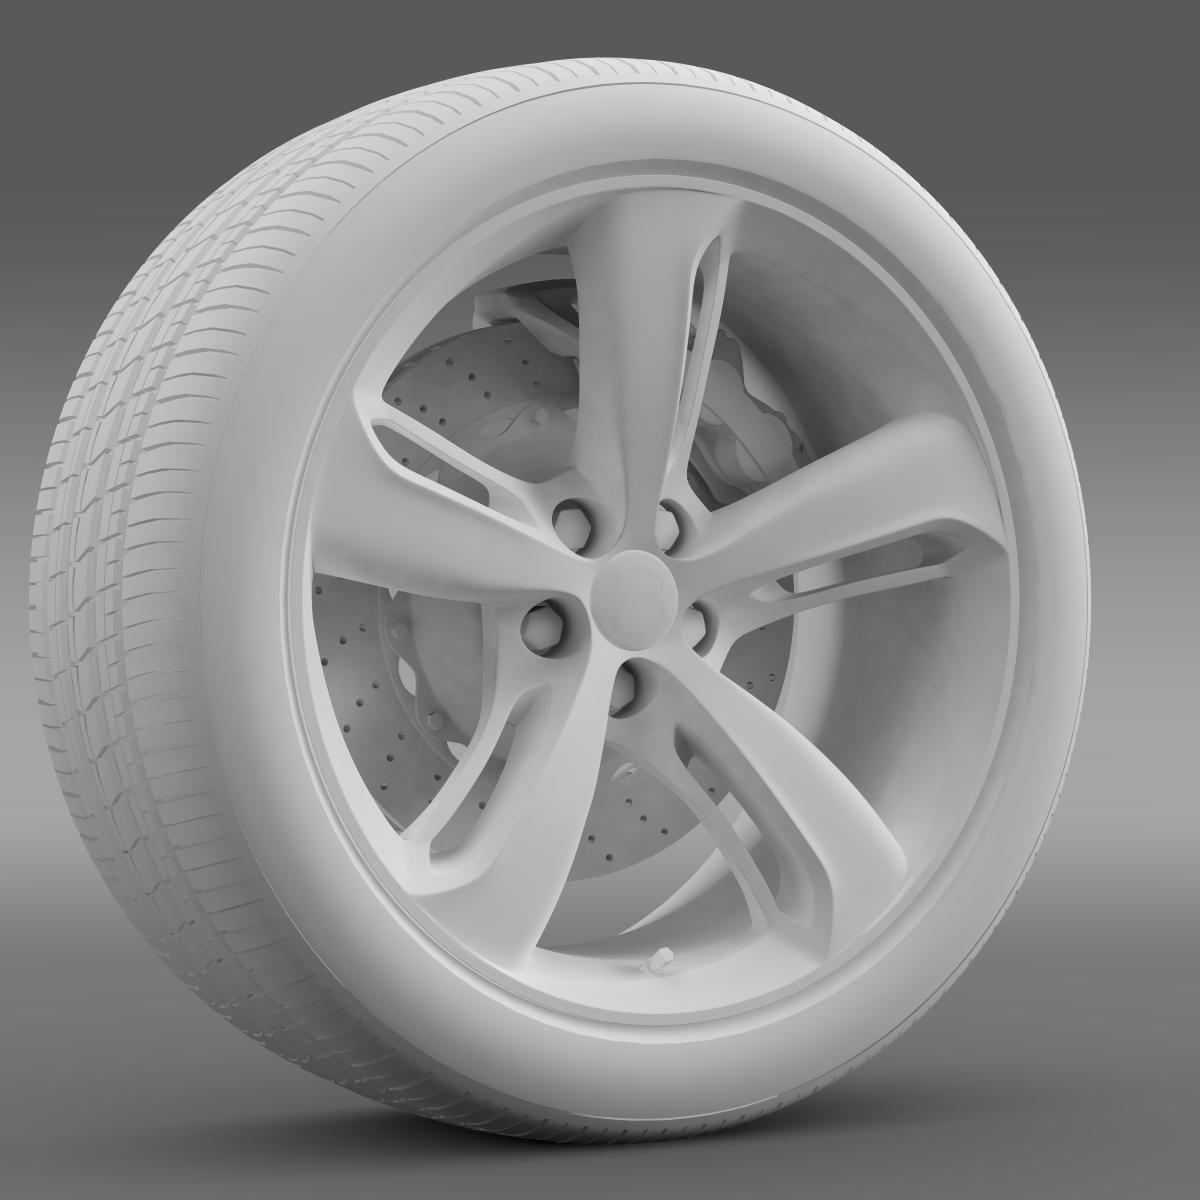 bentley continental gt speed 2015 wheel 3d model 3ds max fbx c4d lwo ma mb hrc xsi obj 210587